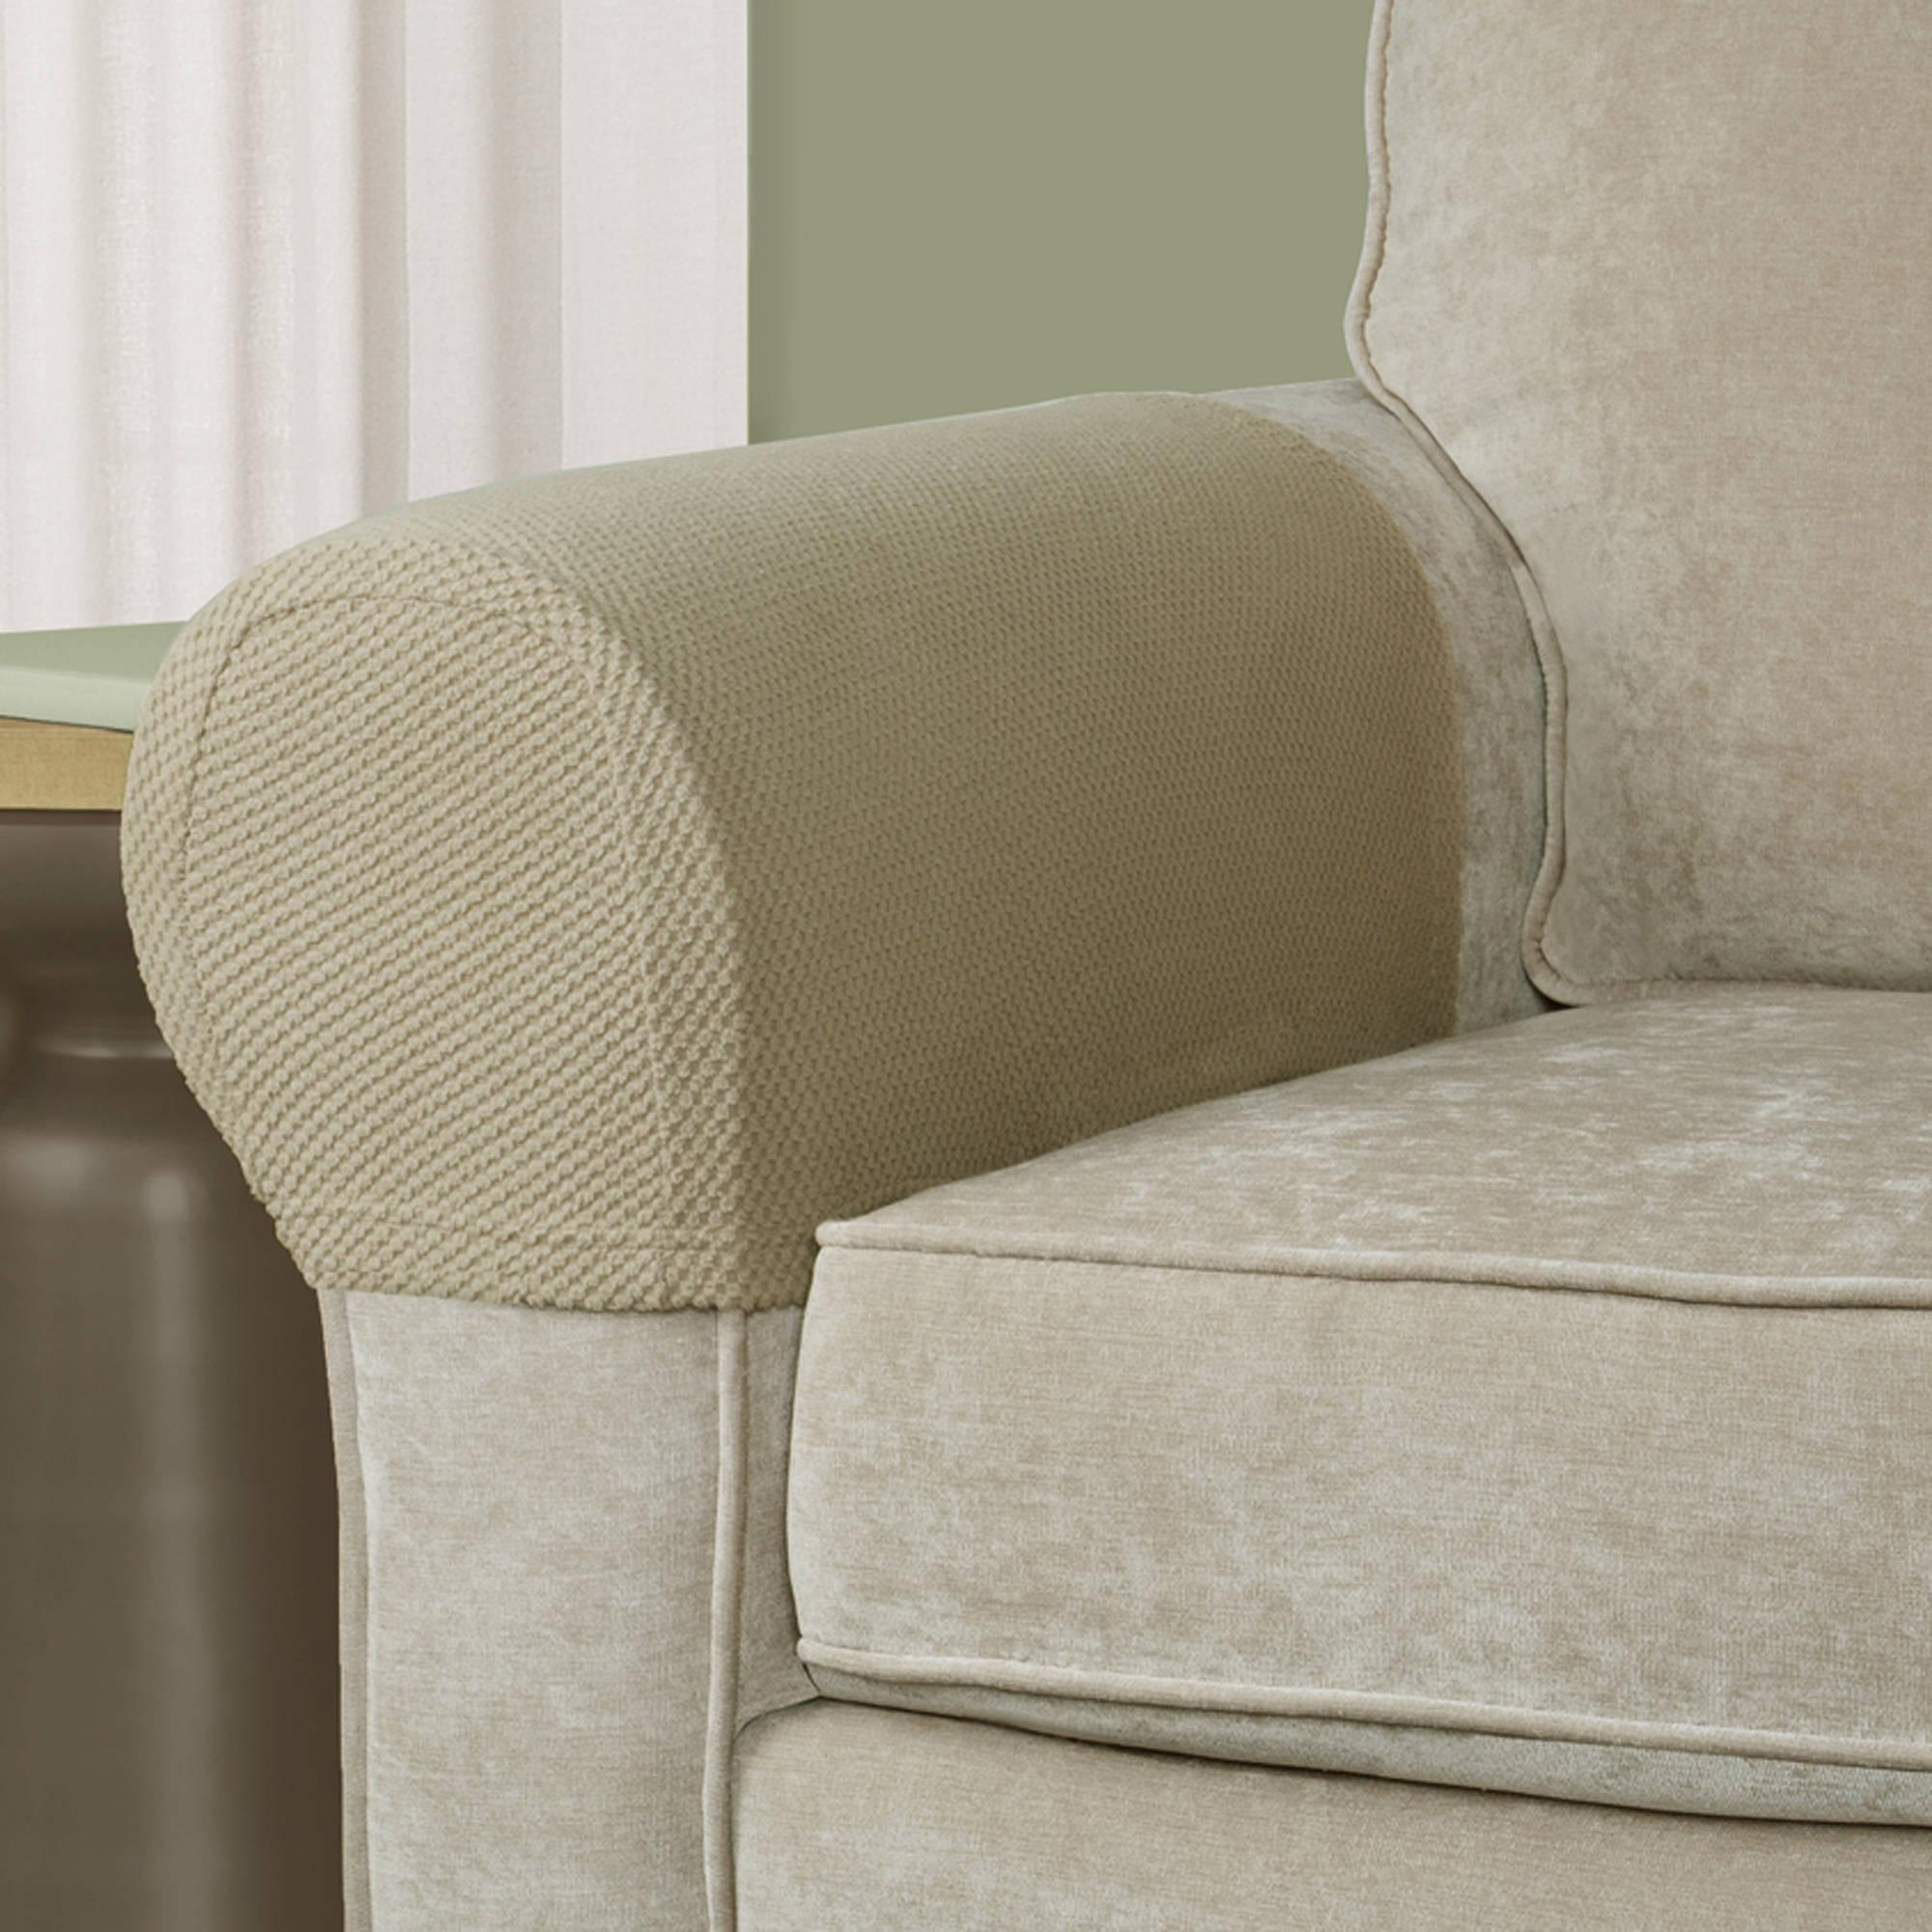 Mainstays Pixel Stretch Fabric Furniture Armrest Covers – Walmart Pertaining To Sofa And Chair Slipcovers (View 10 of 20)